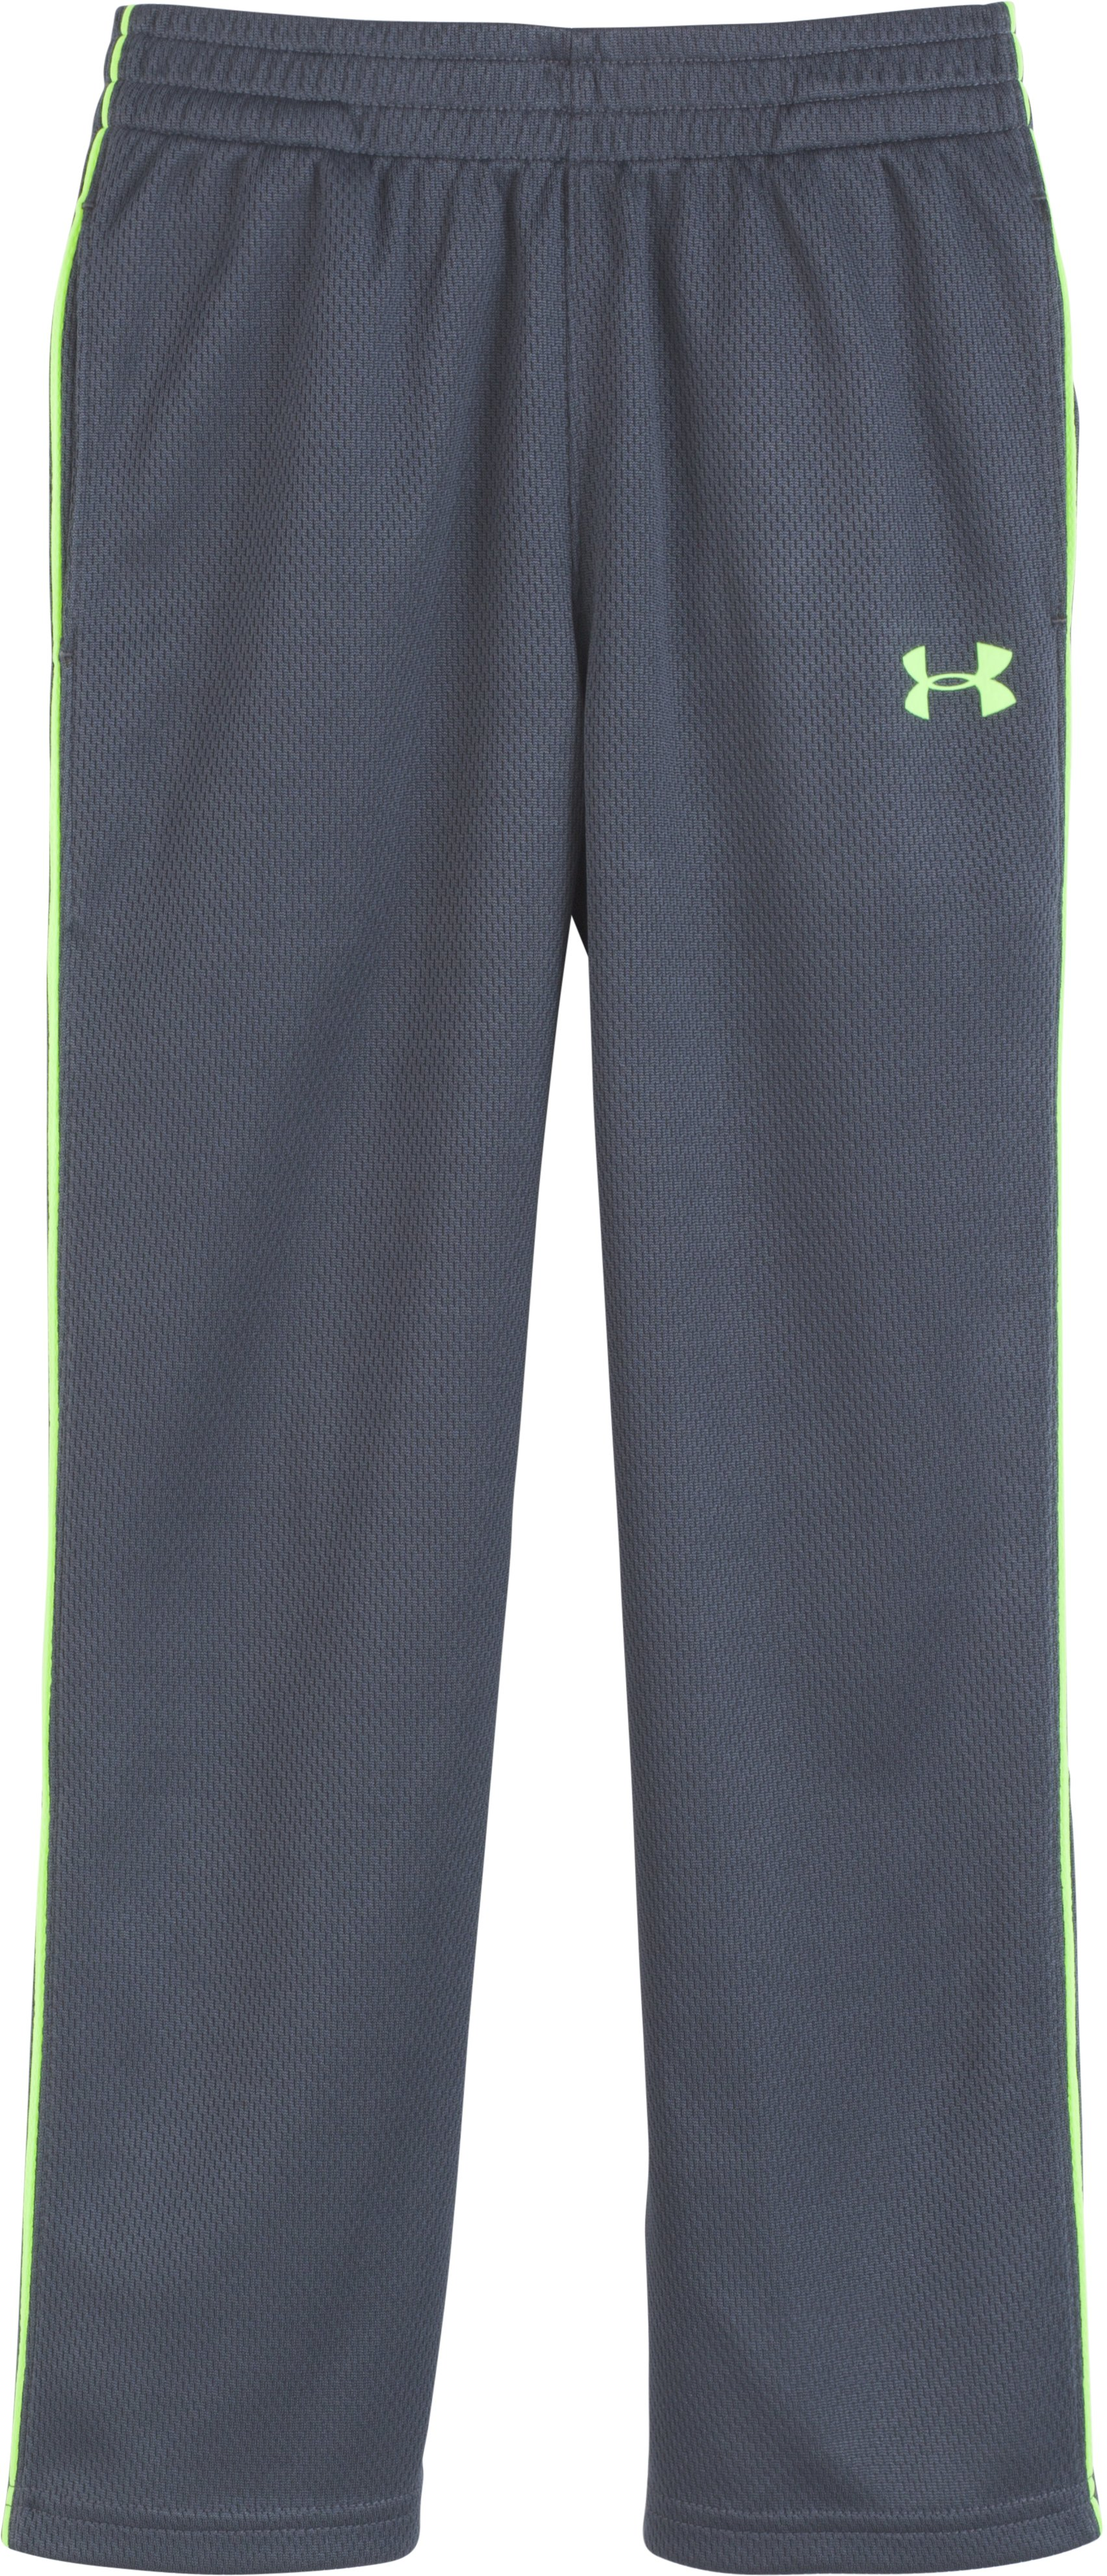 Boys' Pre-School UA Midweight Warm-Up Pants , STEALTH GRAY, zoomed image